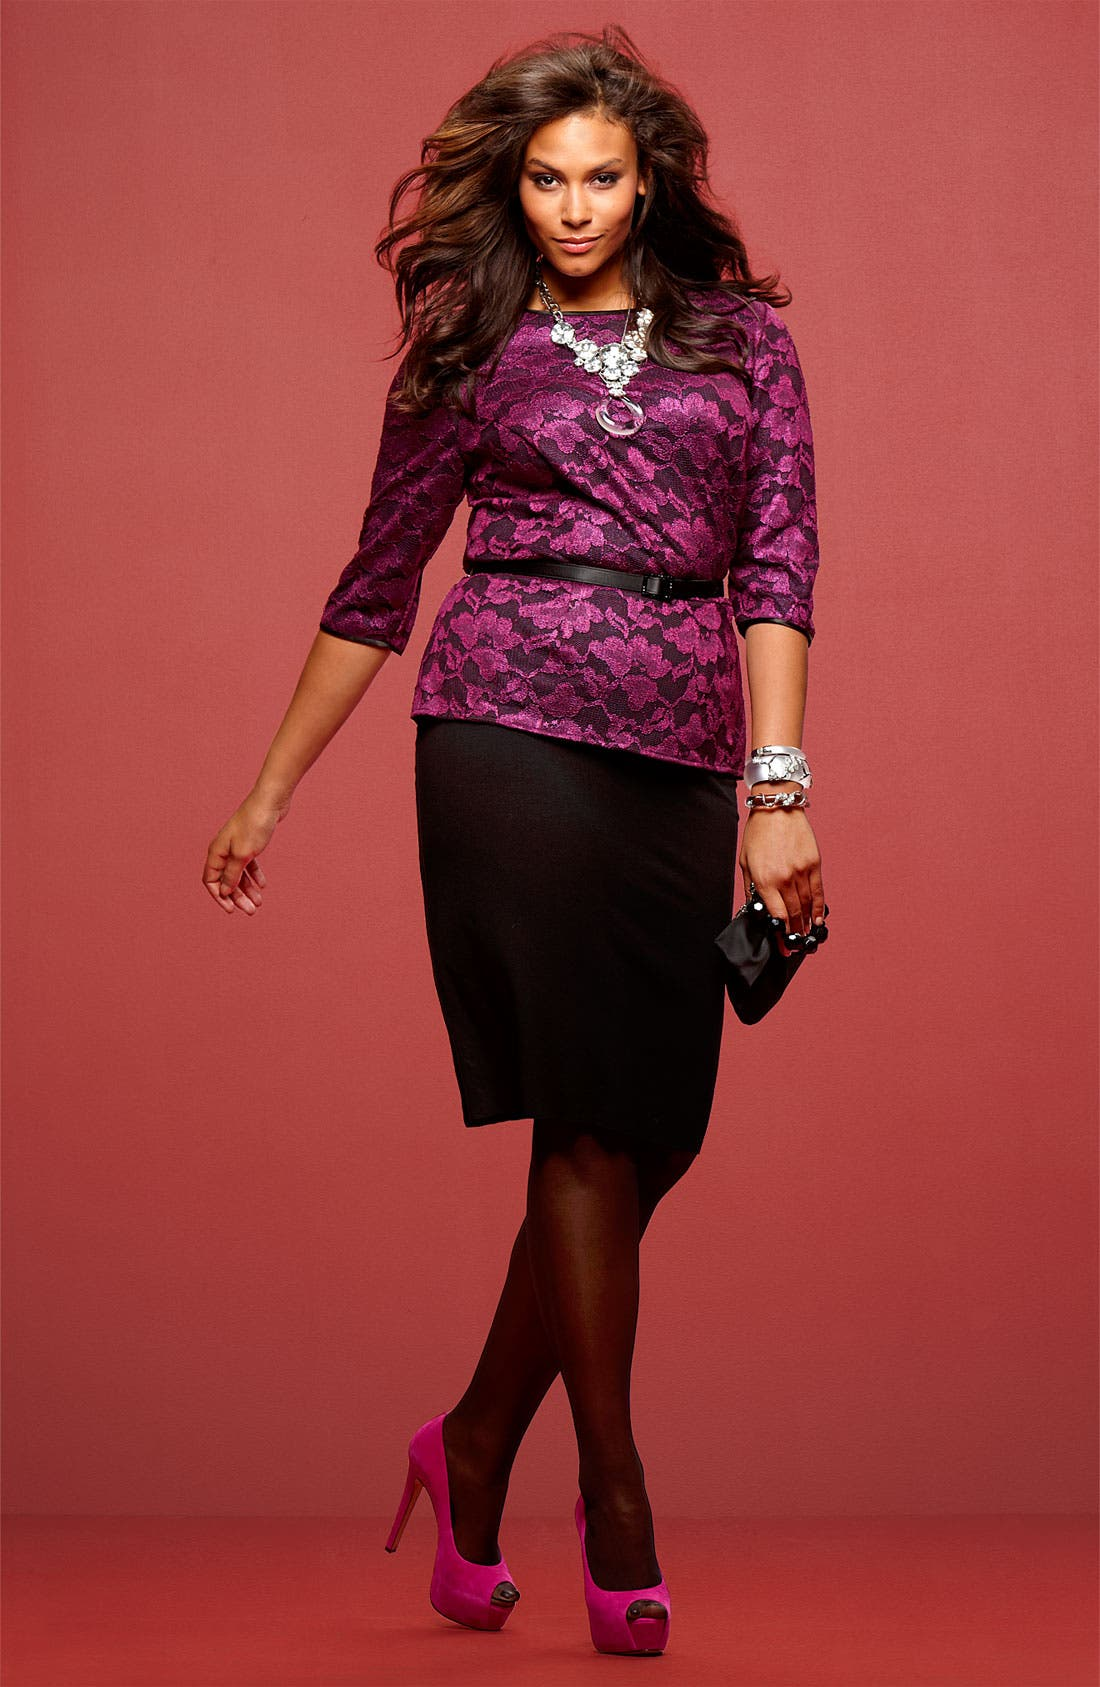 Alternate Image 1 Selected - Alex Evenings Lace Top & Vince Camuto Skirt